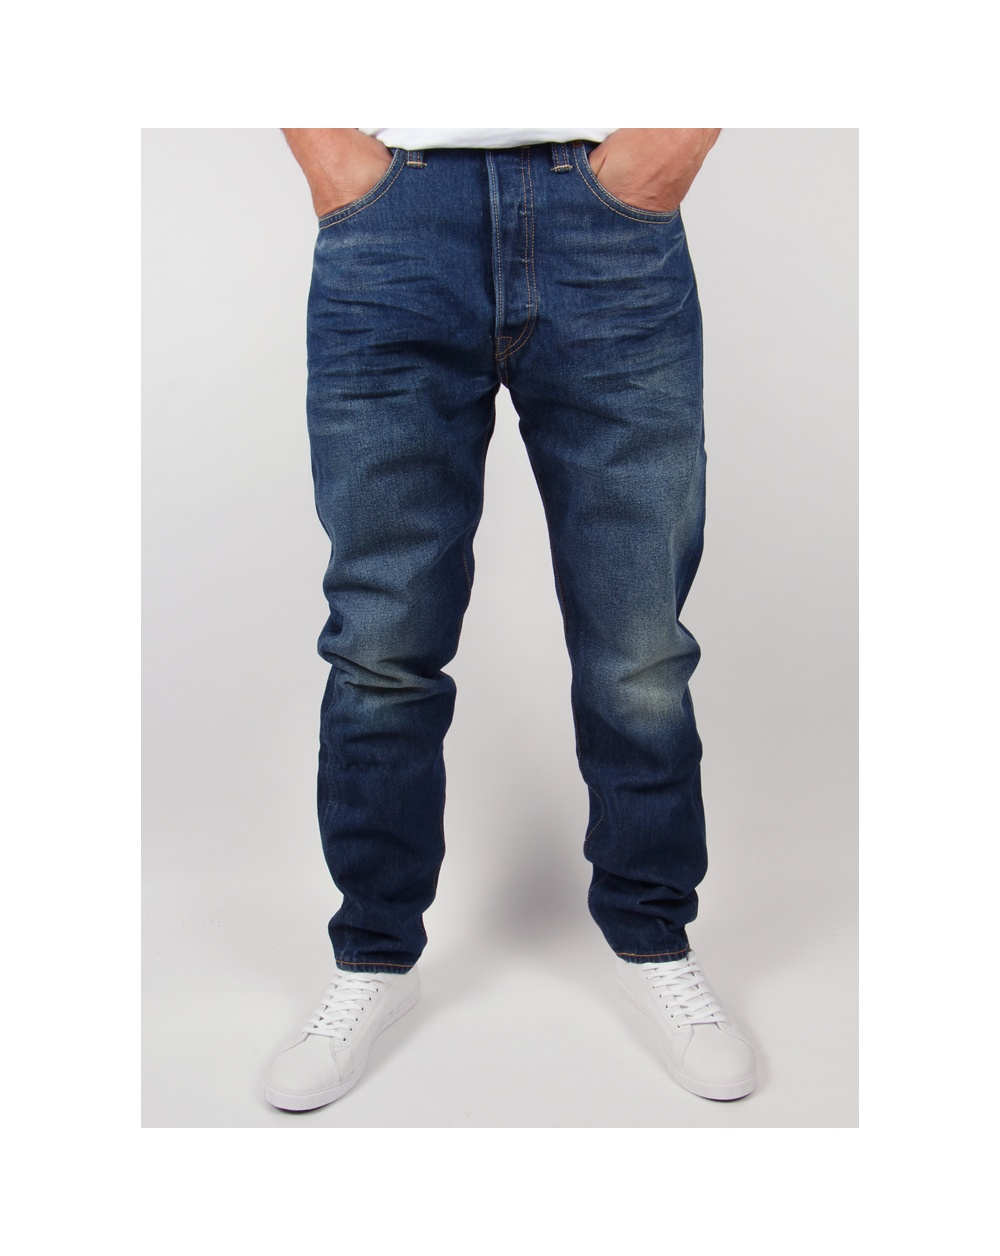 levis 501ct tapered jeans dalston denim mens slim. Black Bedroom Furniture Sets. Home Design Ideas